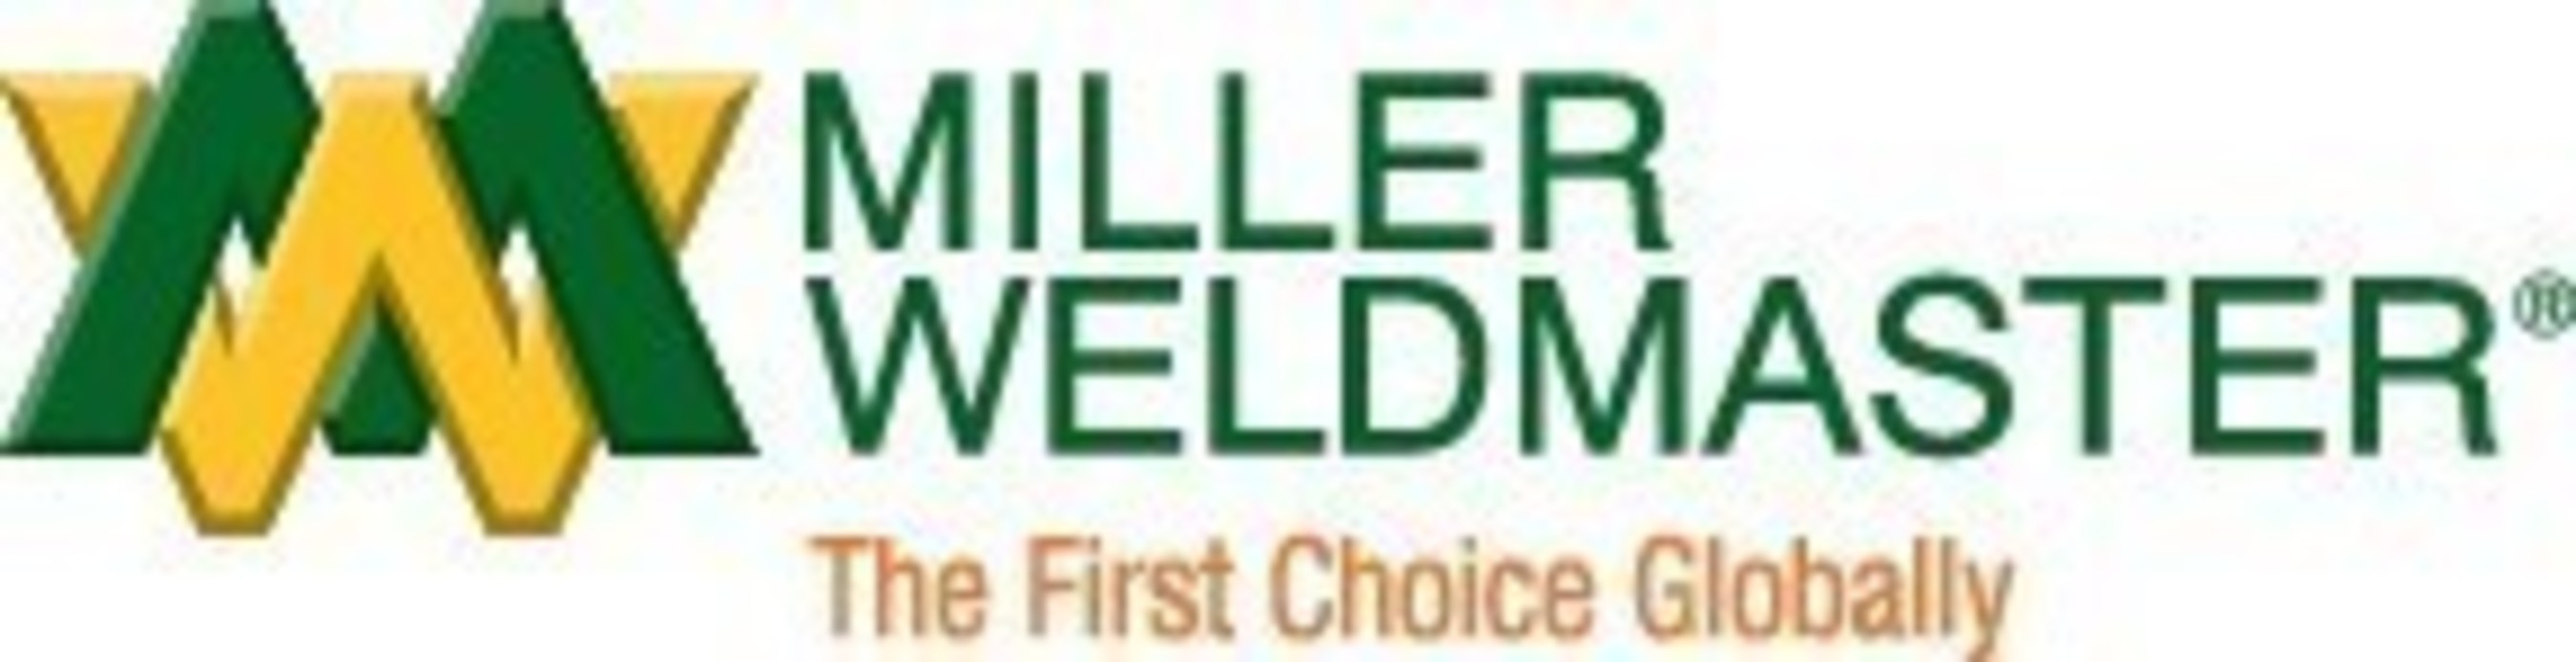 Miller Weldmaster to Exhibit at the 2016 International Roofing Expo